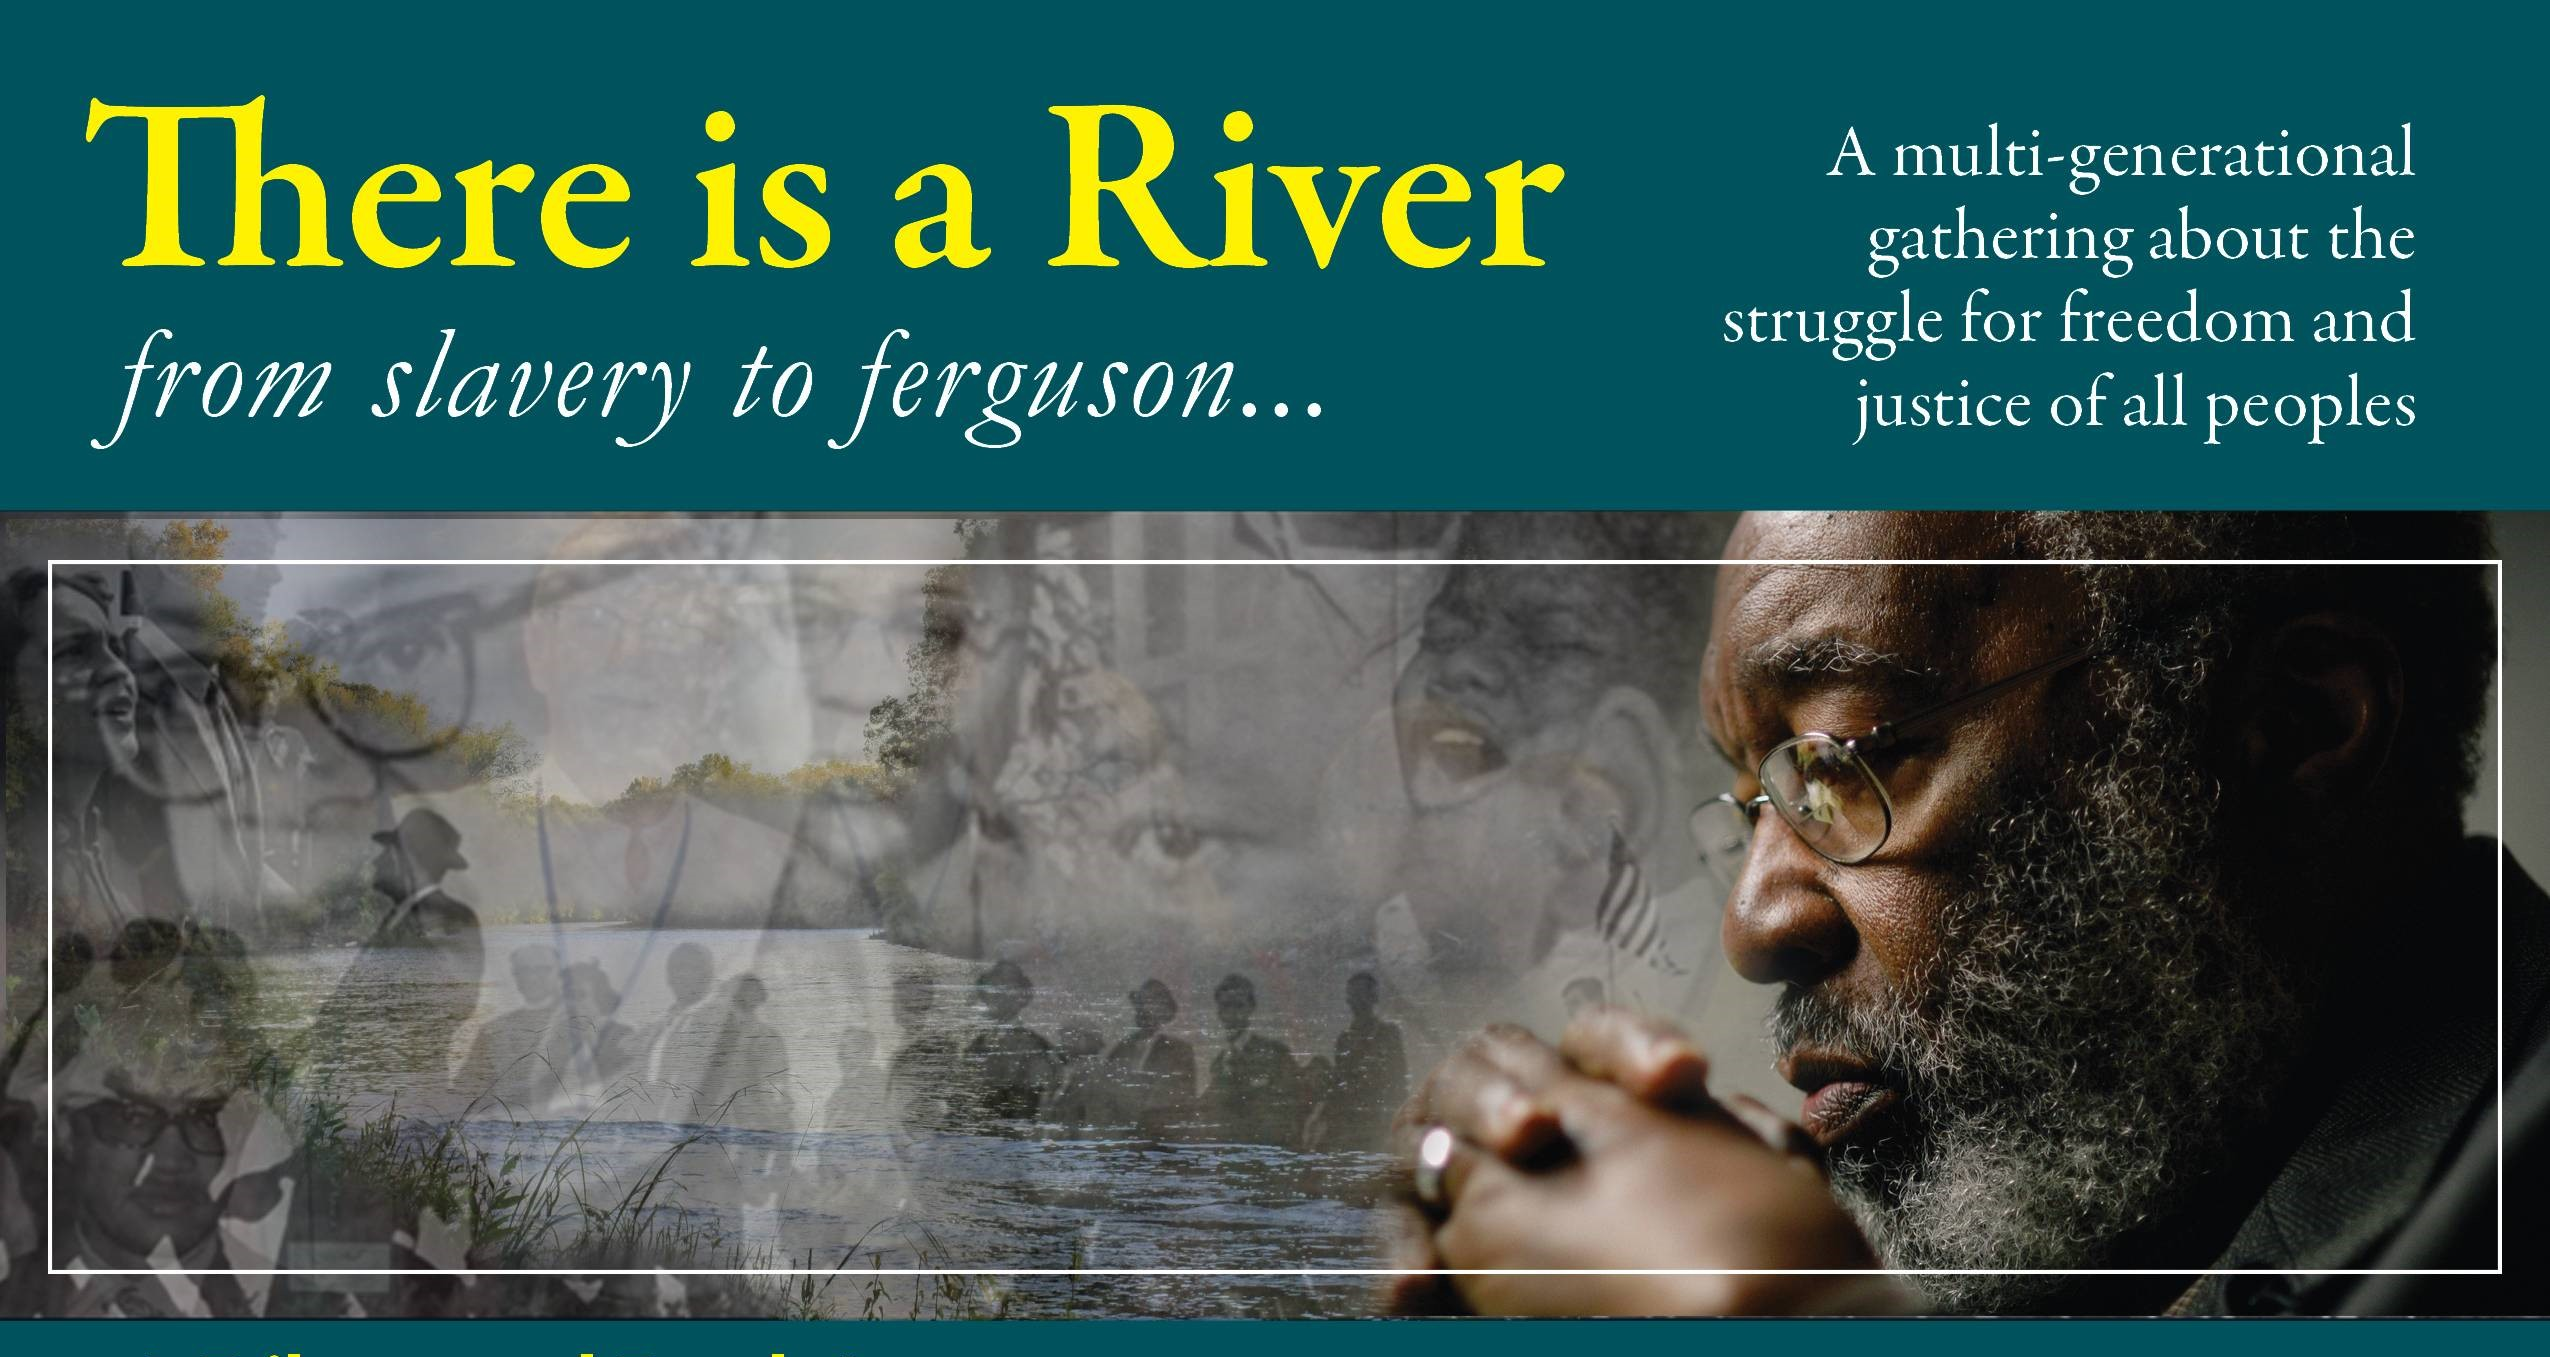 There is a river from slavery to fergusson